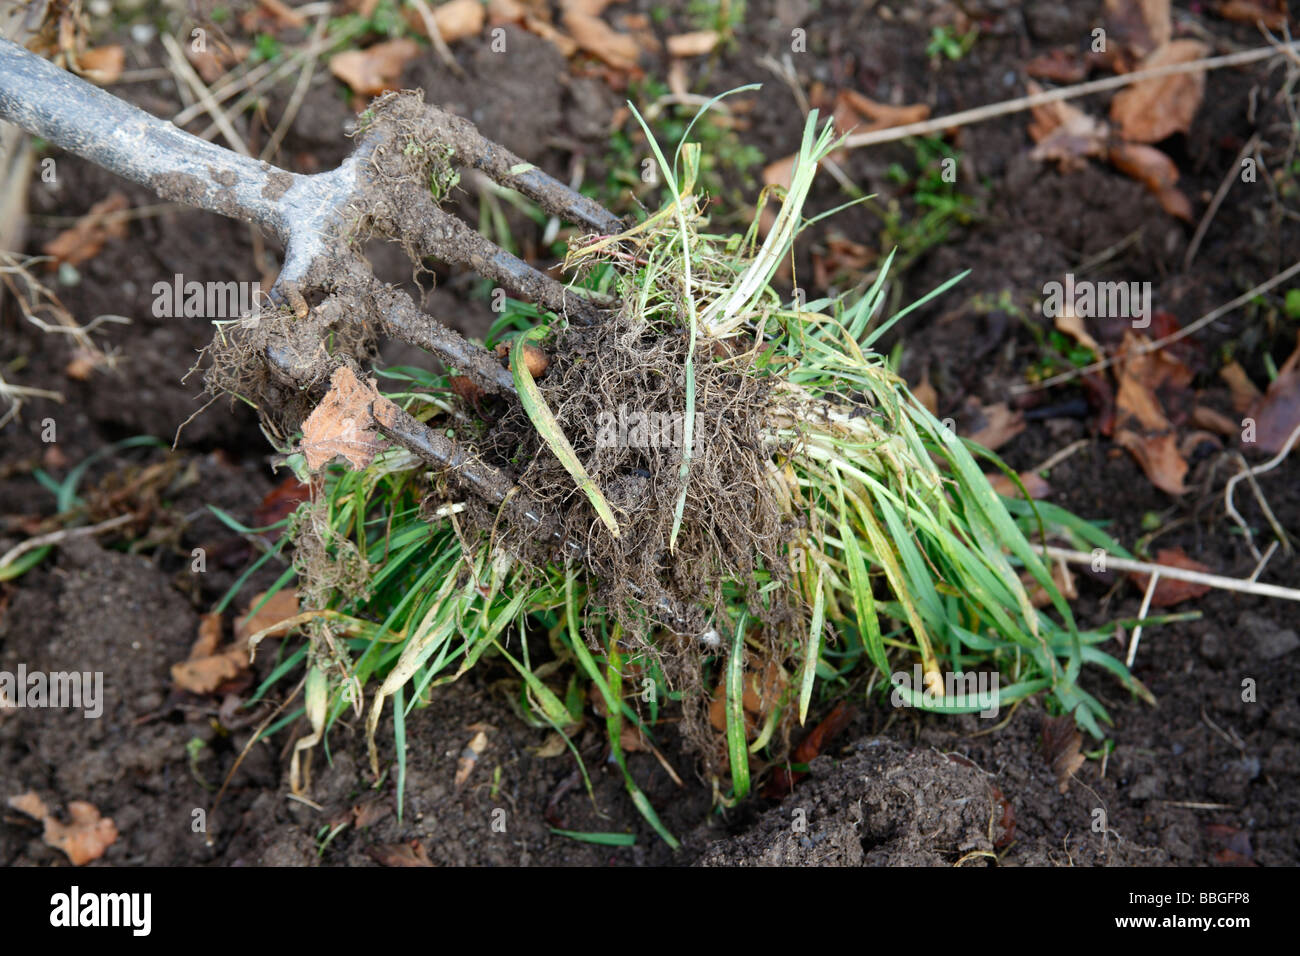 USING A FORK TO SHAKE SOIL FROM GRASS ROOTS - Stock Image